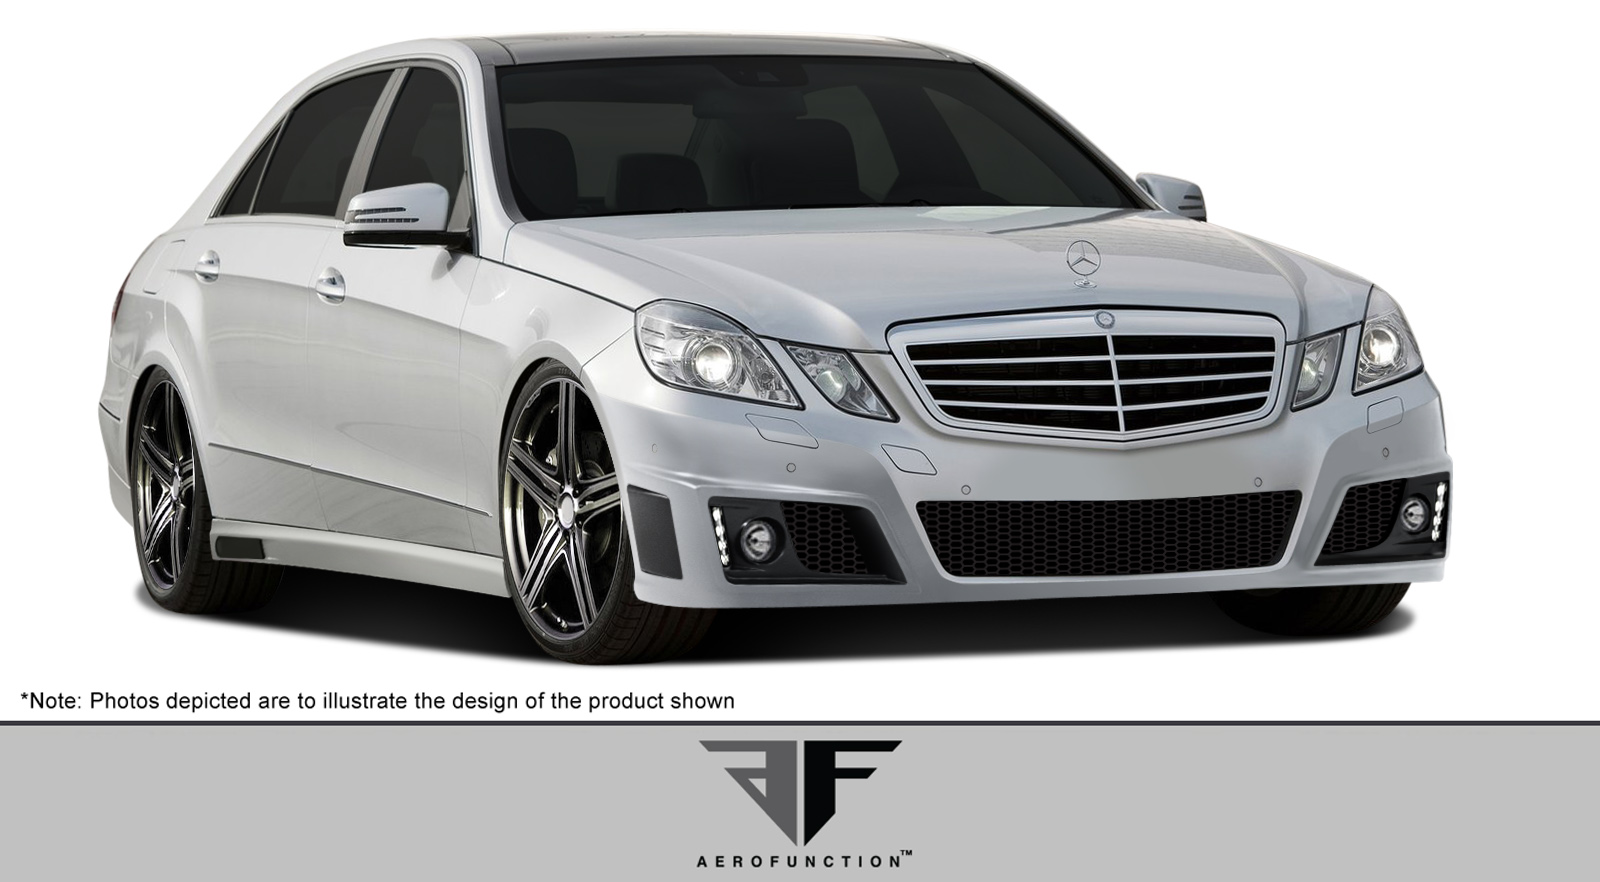 Polyurethane Bodykit Bodykit for 2010 Mercedes E Class 4DR - 2010-2013 Mercedes E Class W212 AF-2 Body Kit ( PUR-RIM ) - 5 Piece - Includes AF-2 Front